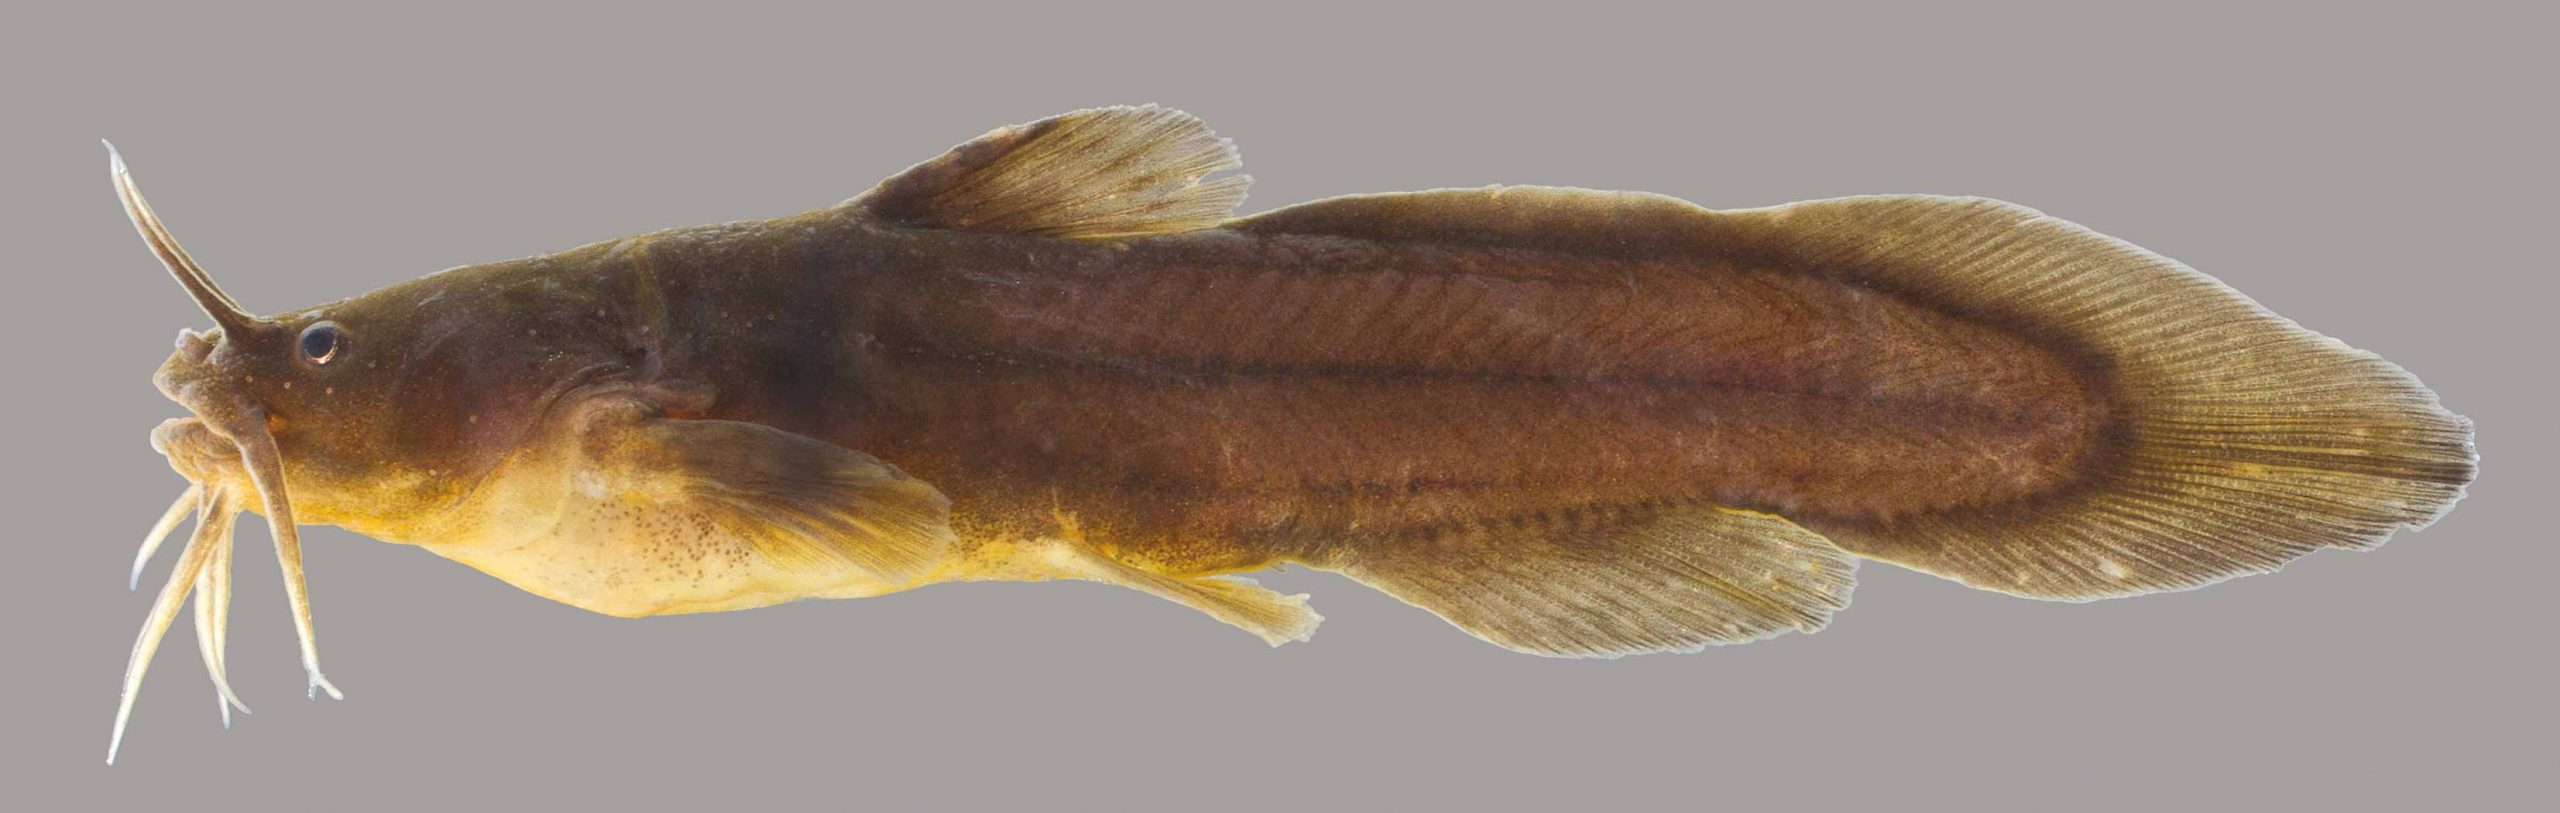 Lateral view of a tadpole madtom